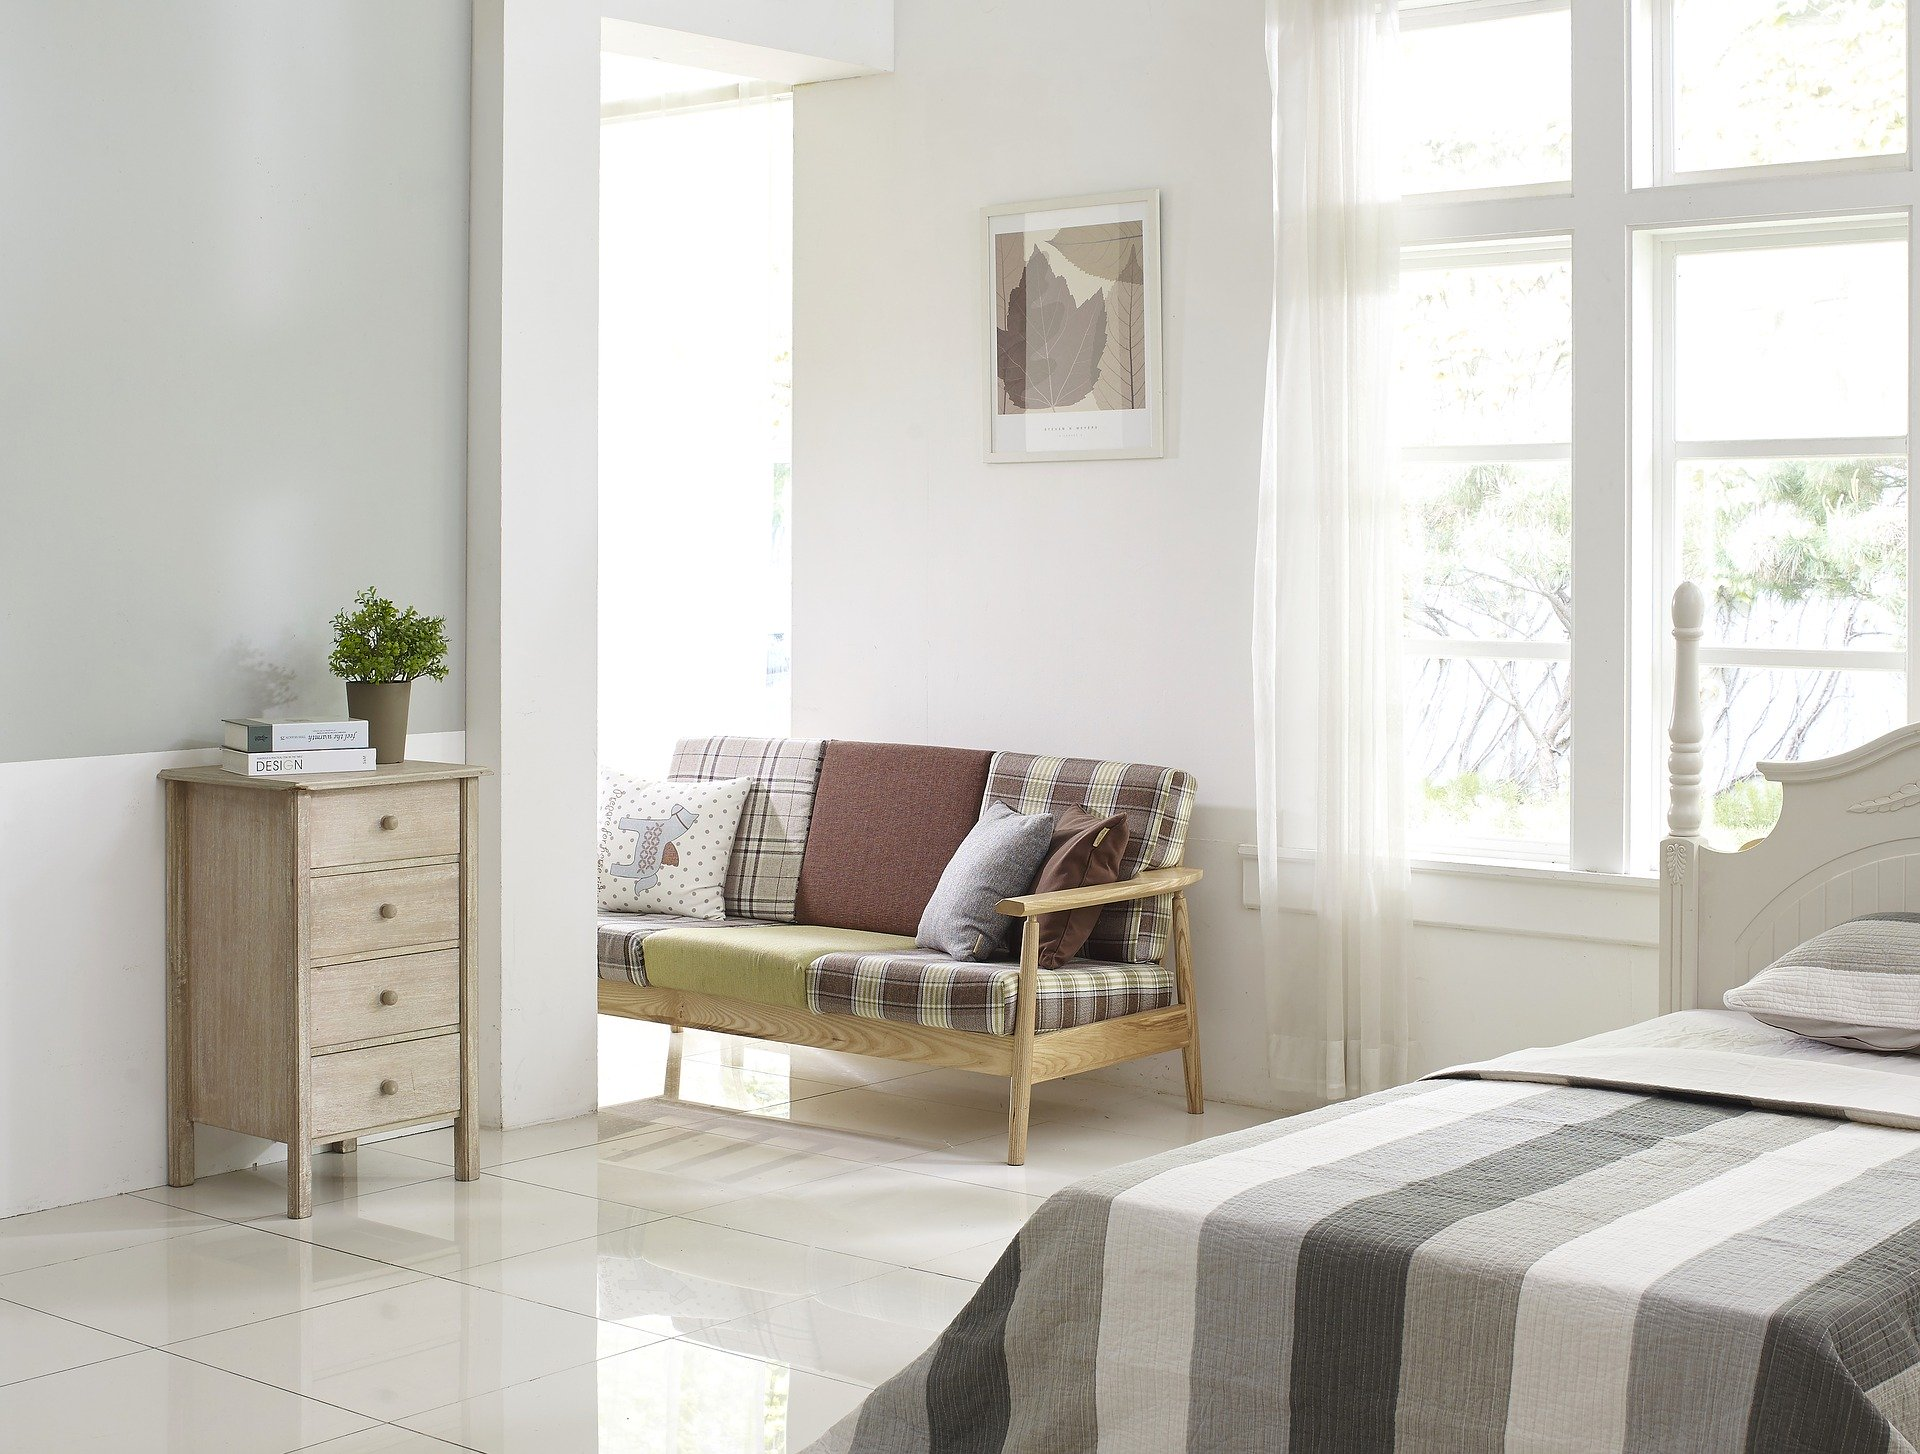 How To Use A Spare Bedroom 5 Ideas Fresh Design Blog